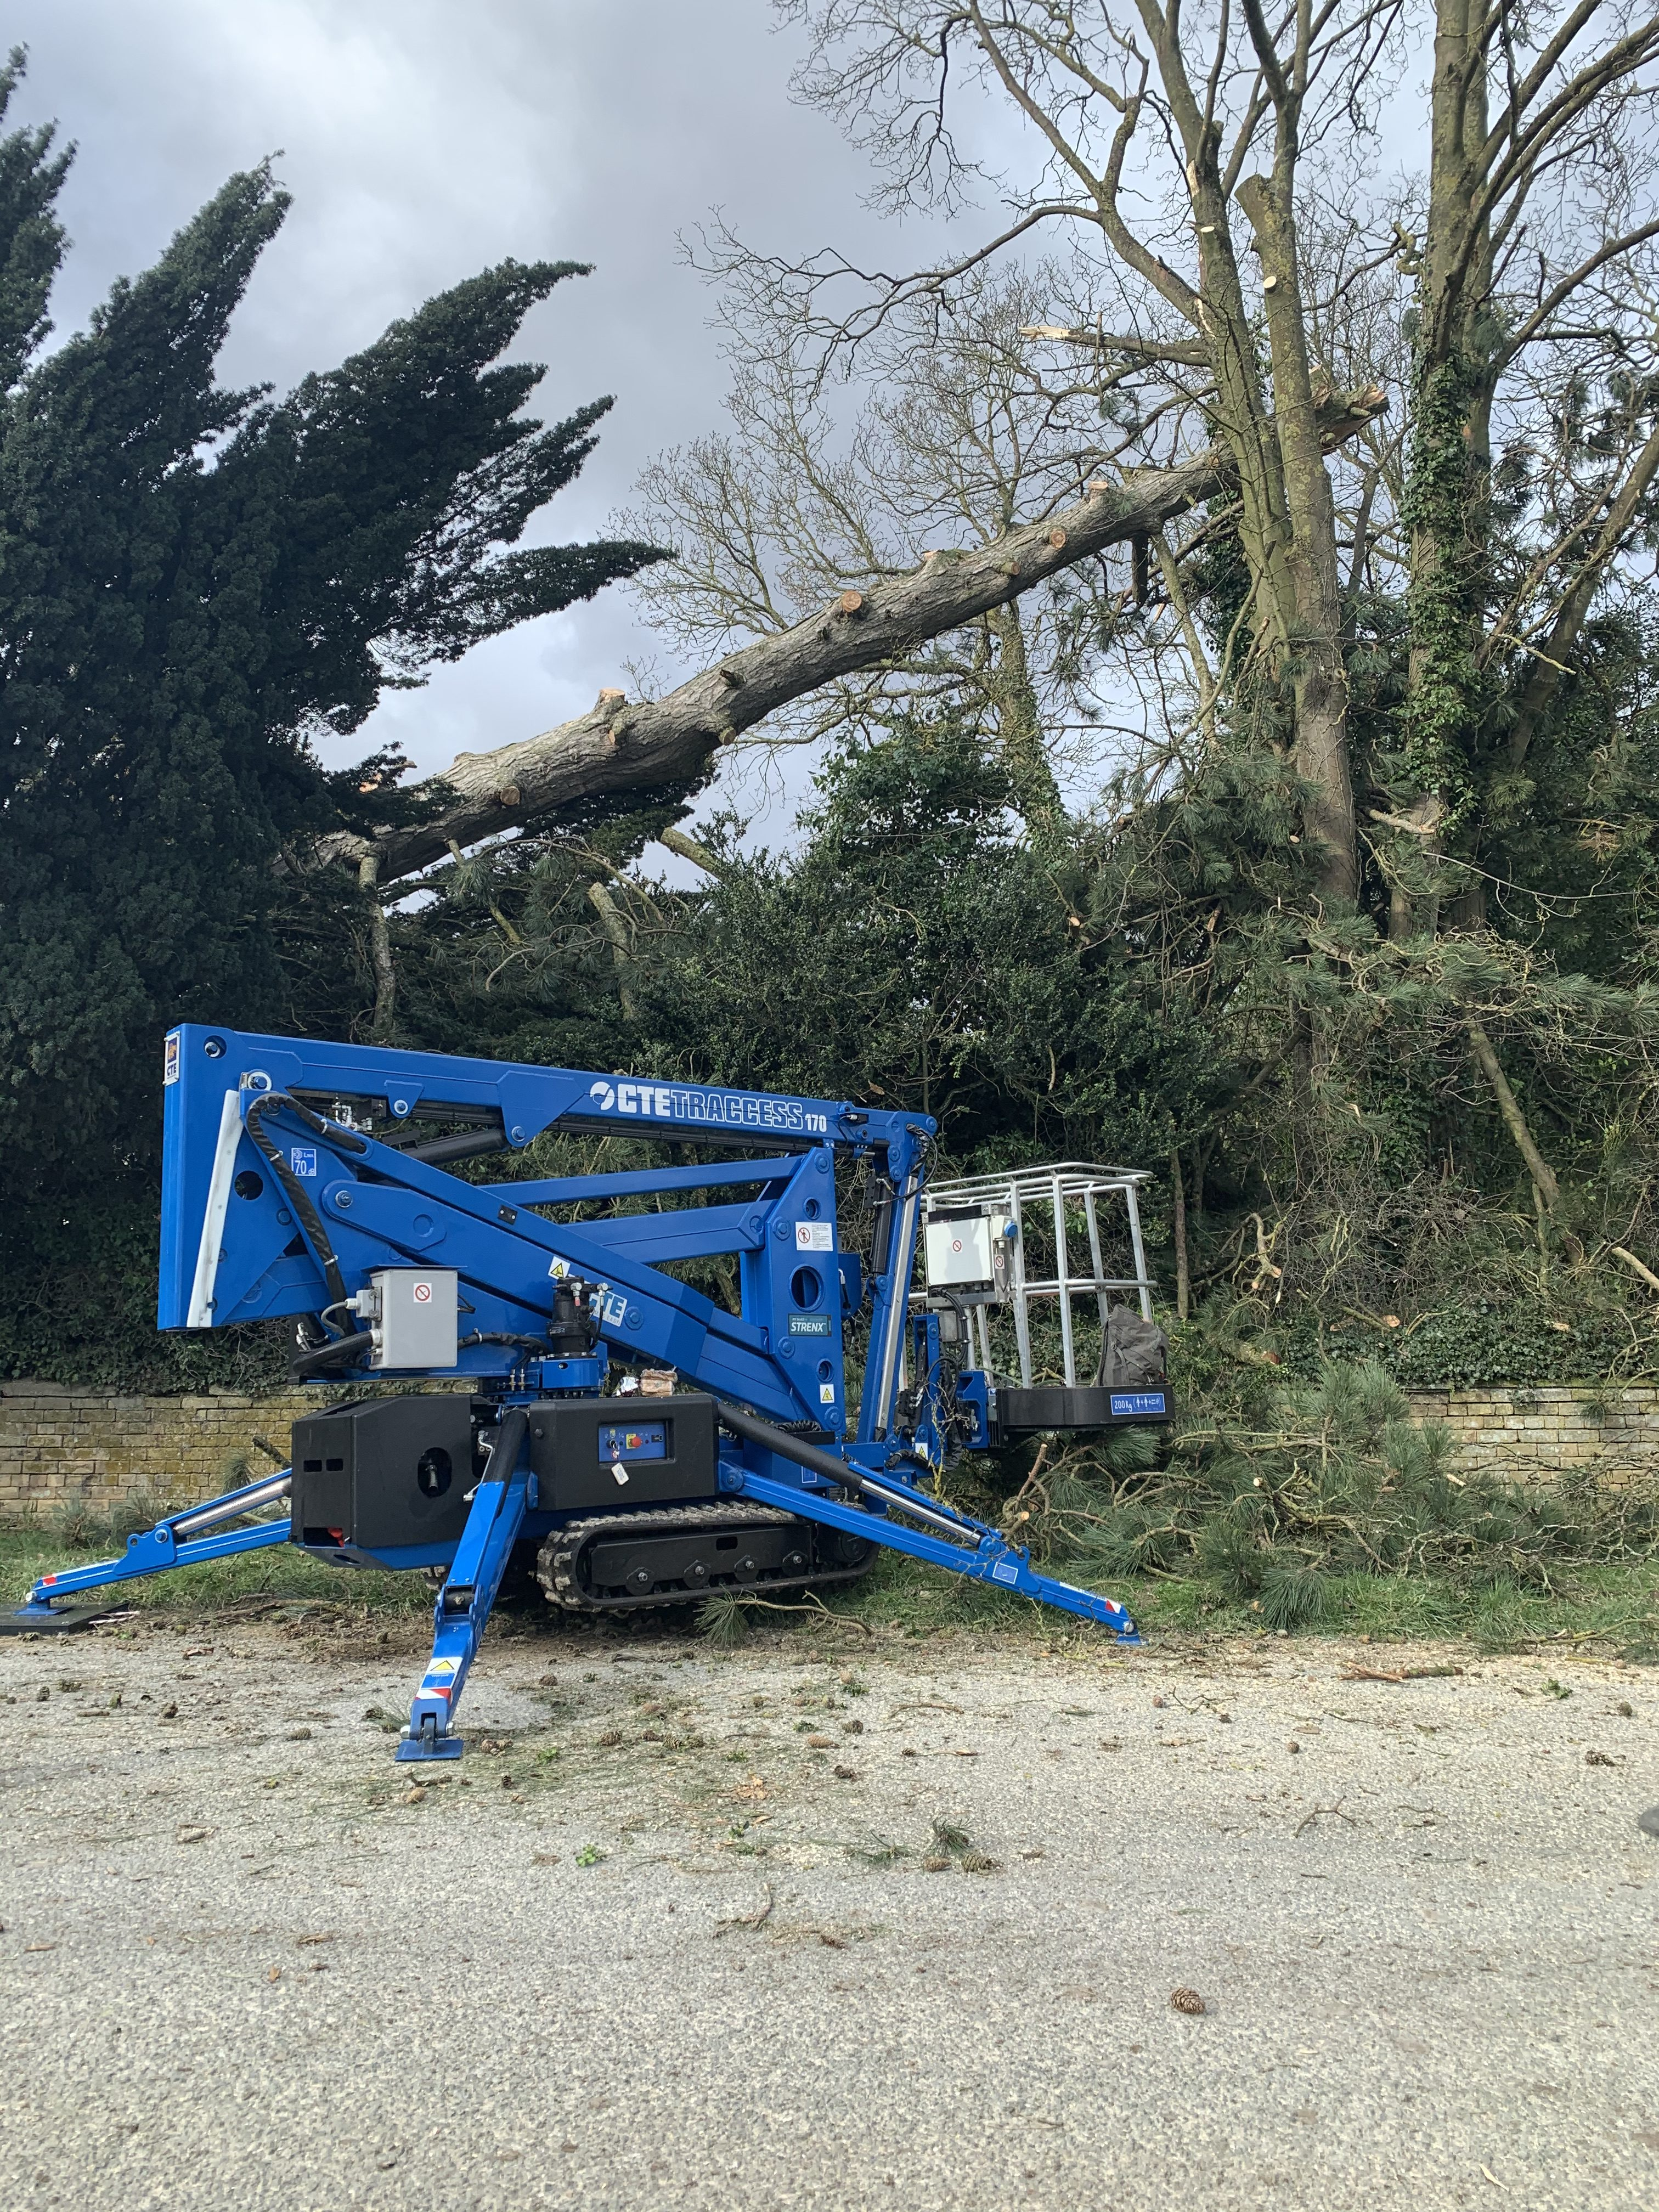 Some recent works using our access platform to remove windblown trees along with some rigging.